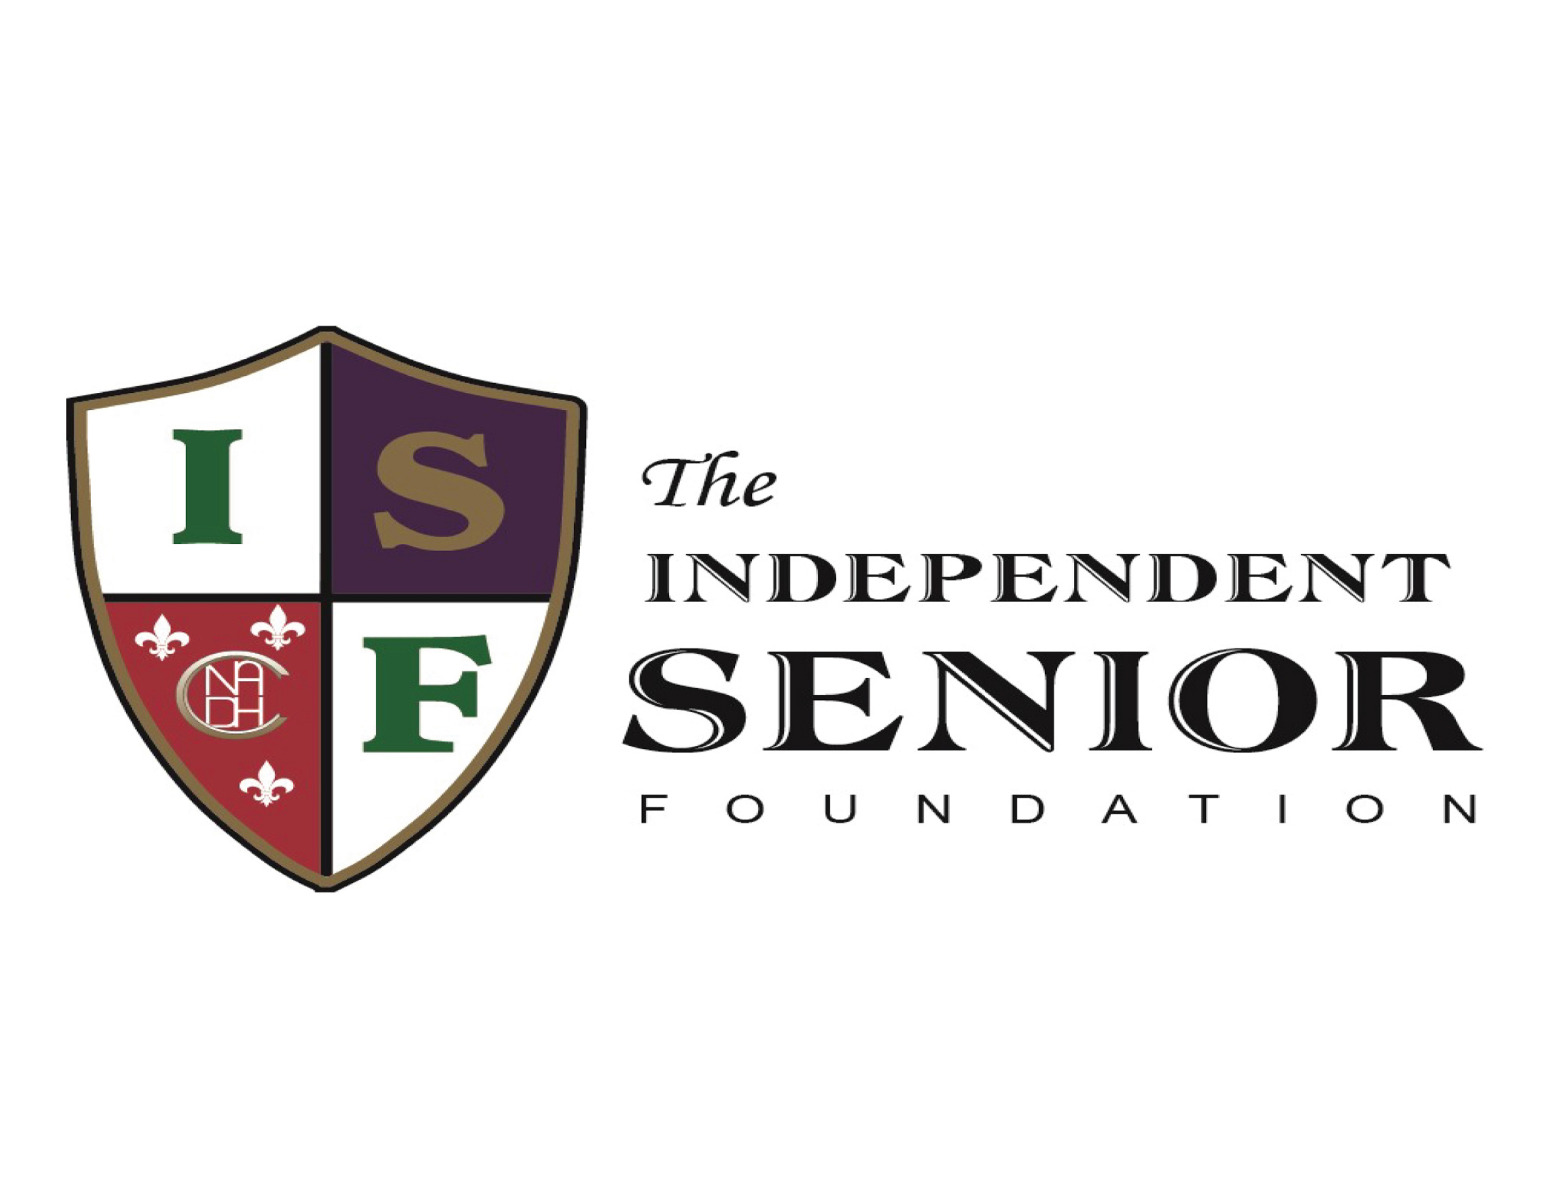 THE INDEPENDENT SENIOR FOUNDATION